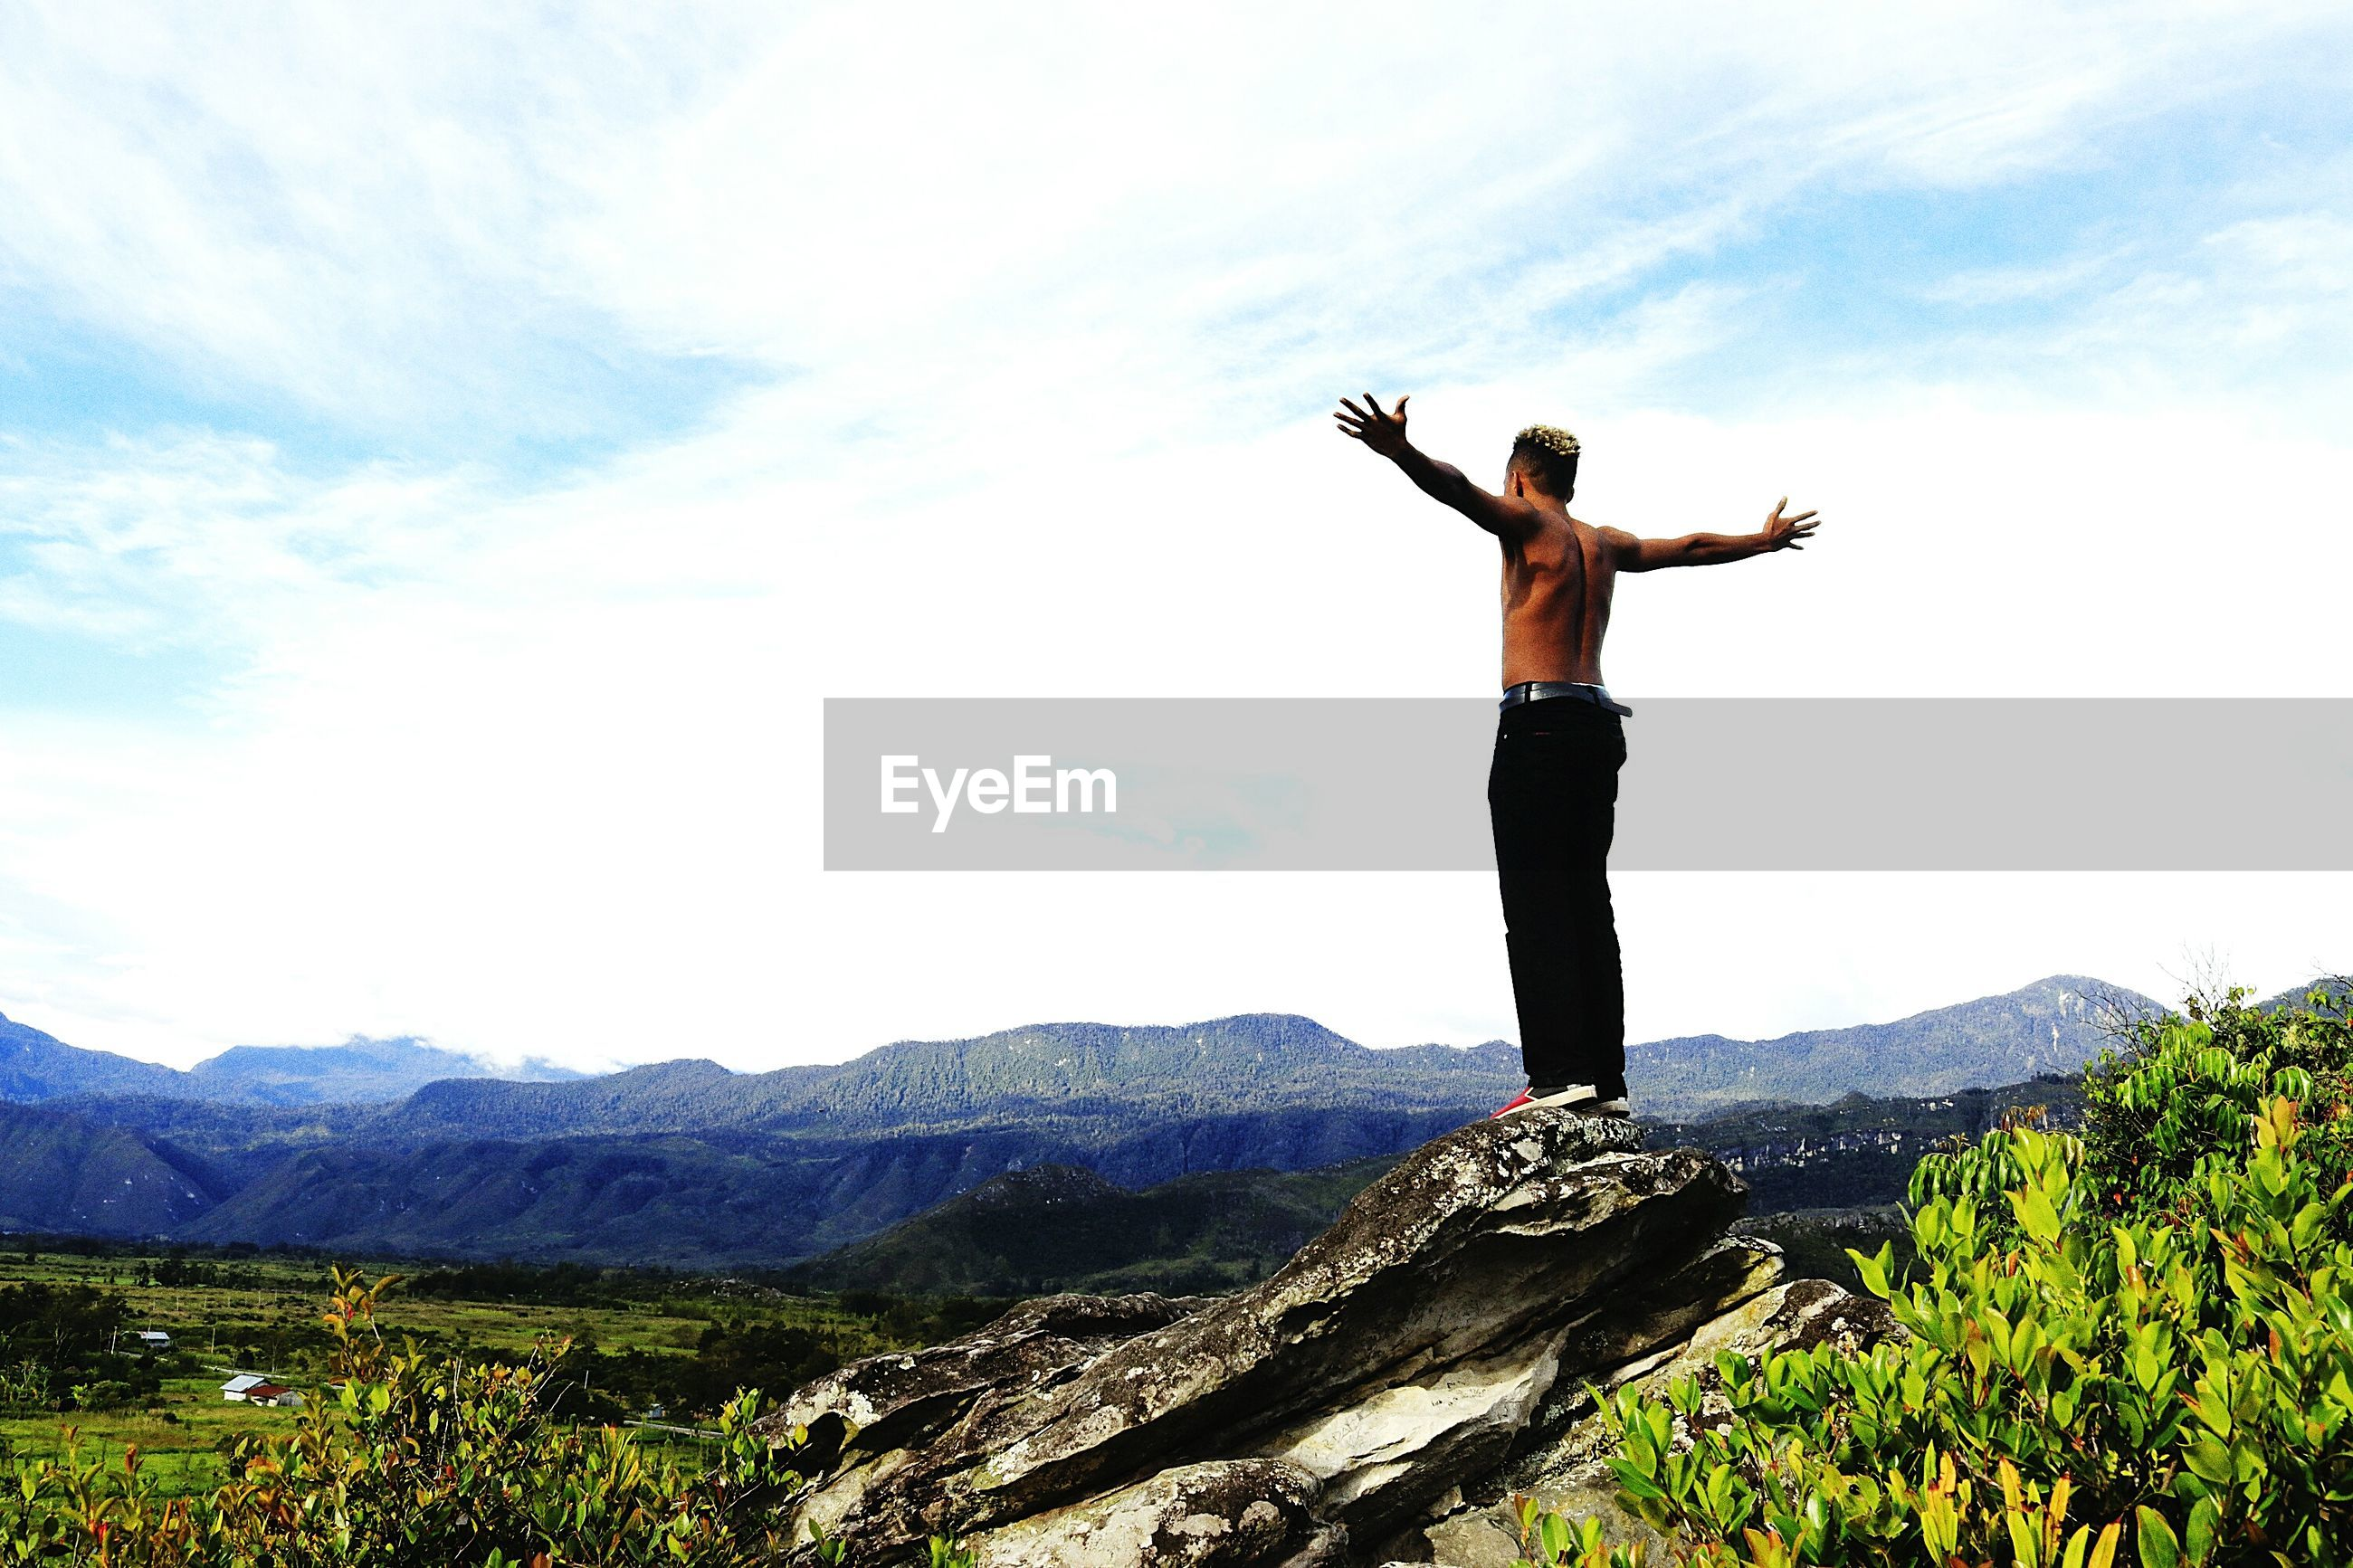 Low angle view of shirtless young man with arms outstretched standing on mountain against cloudy sky